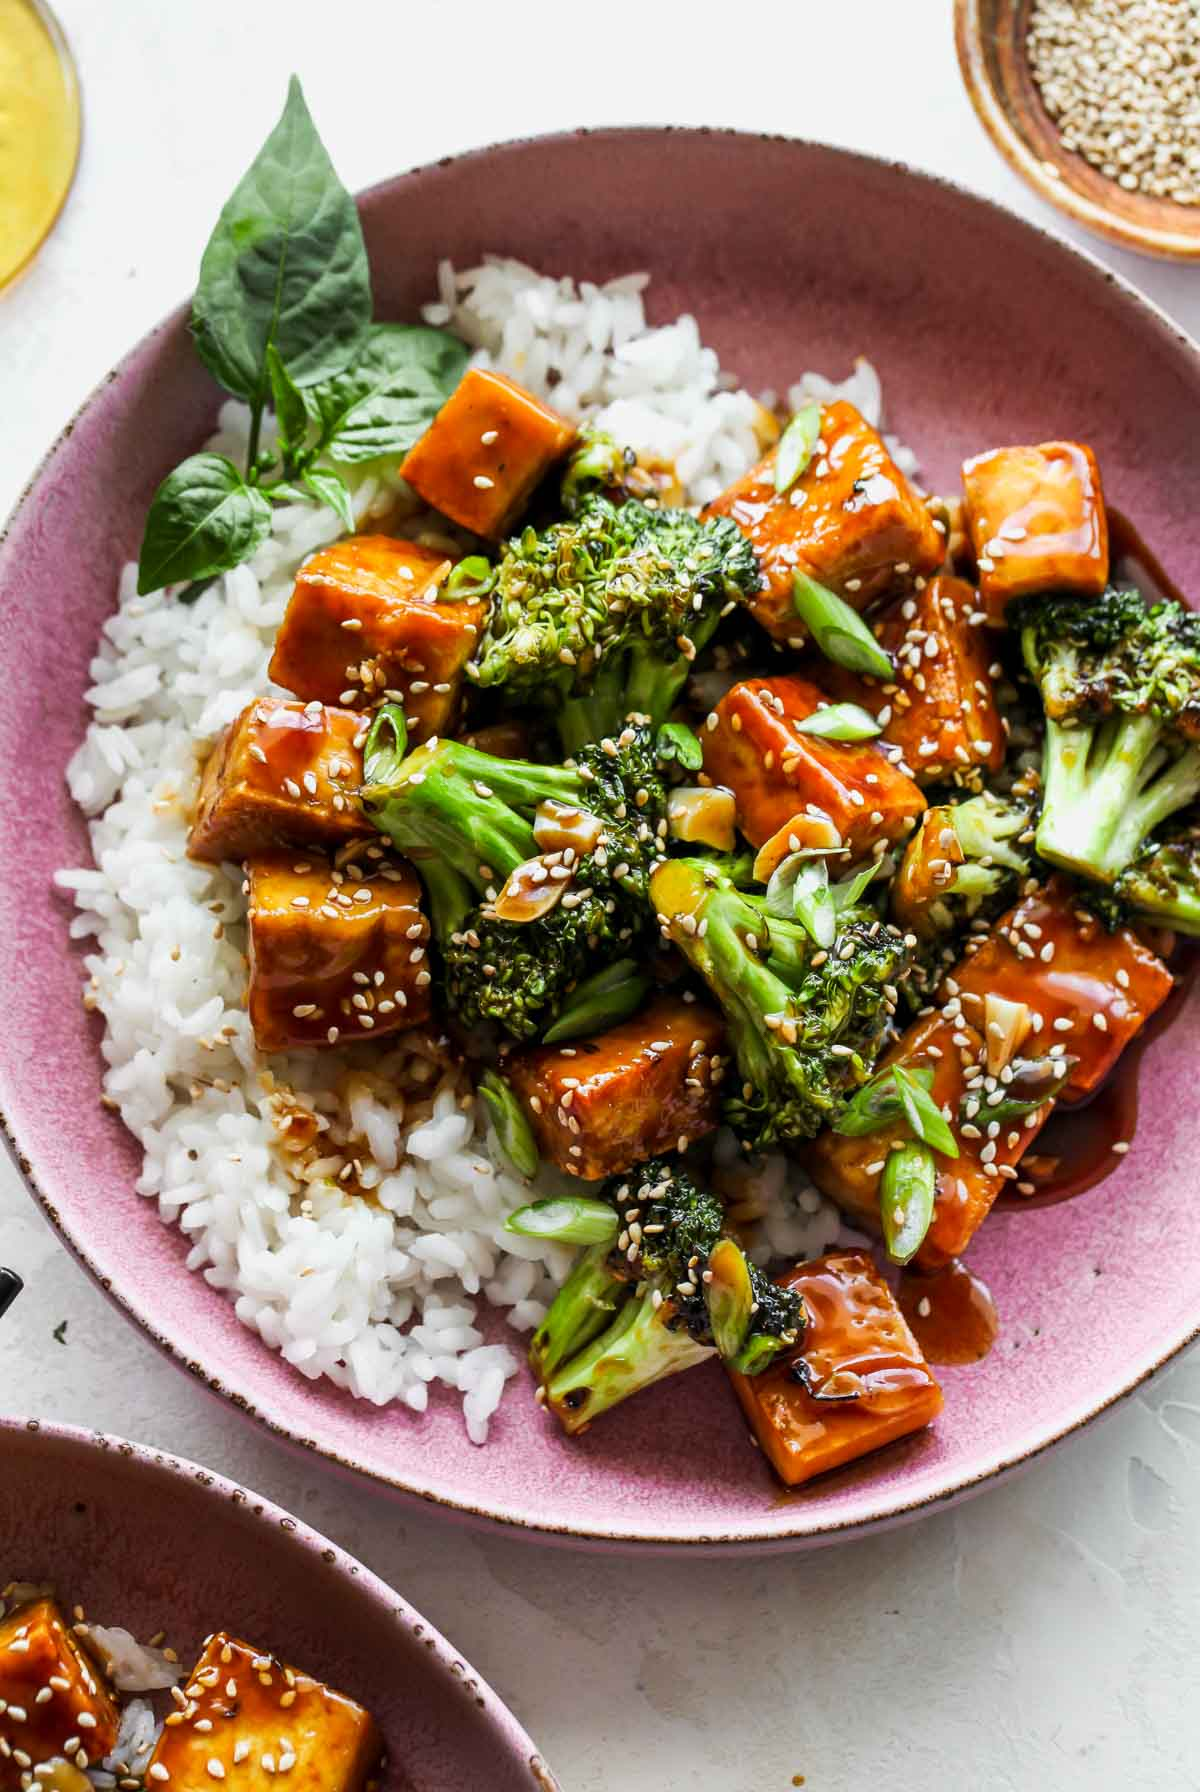 Finished recipe in a pink bowl topped with teriyaki sauce